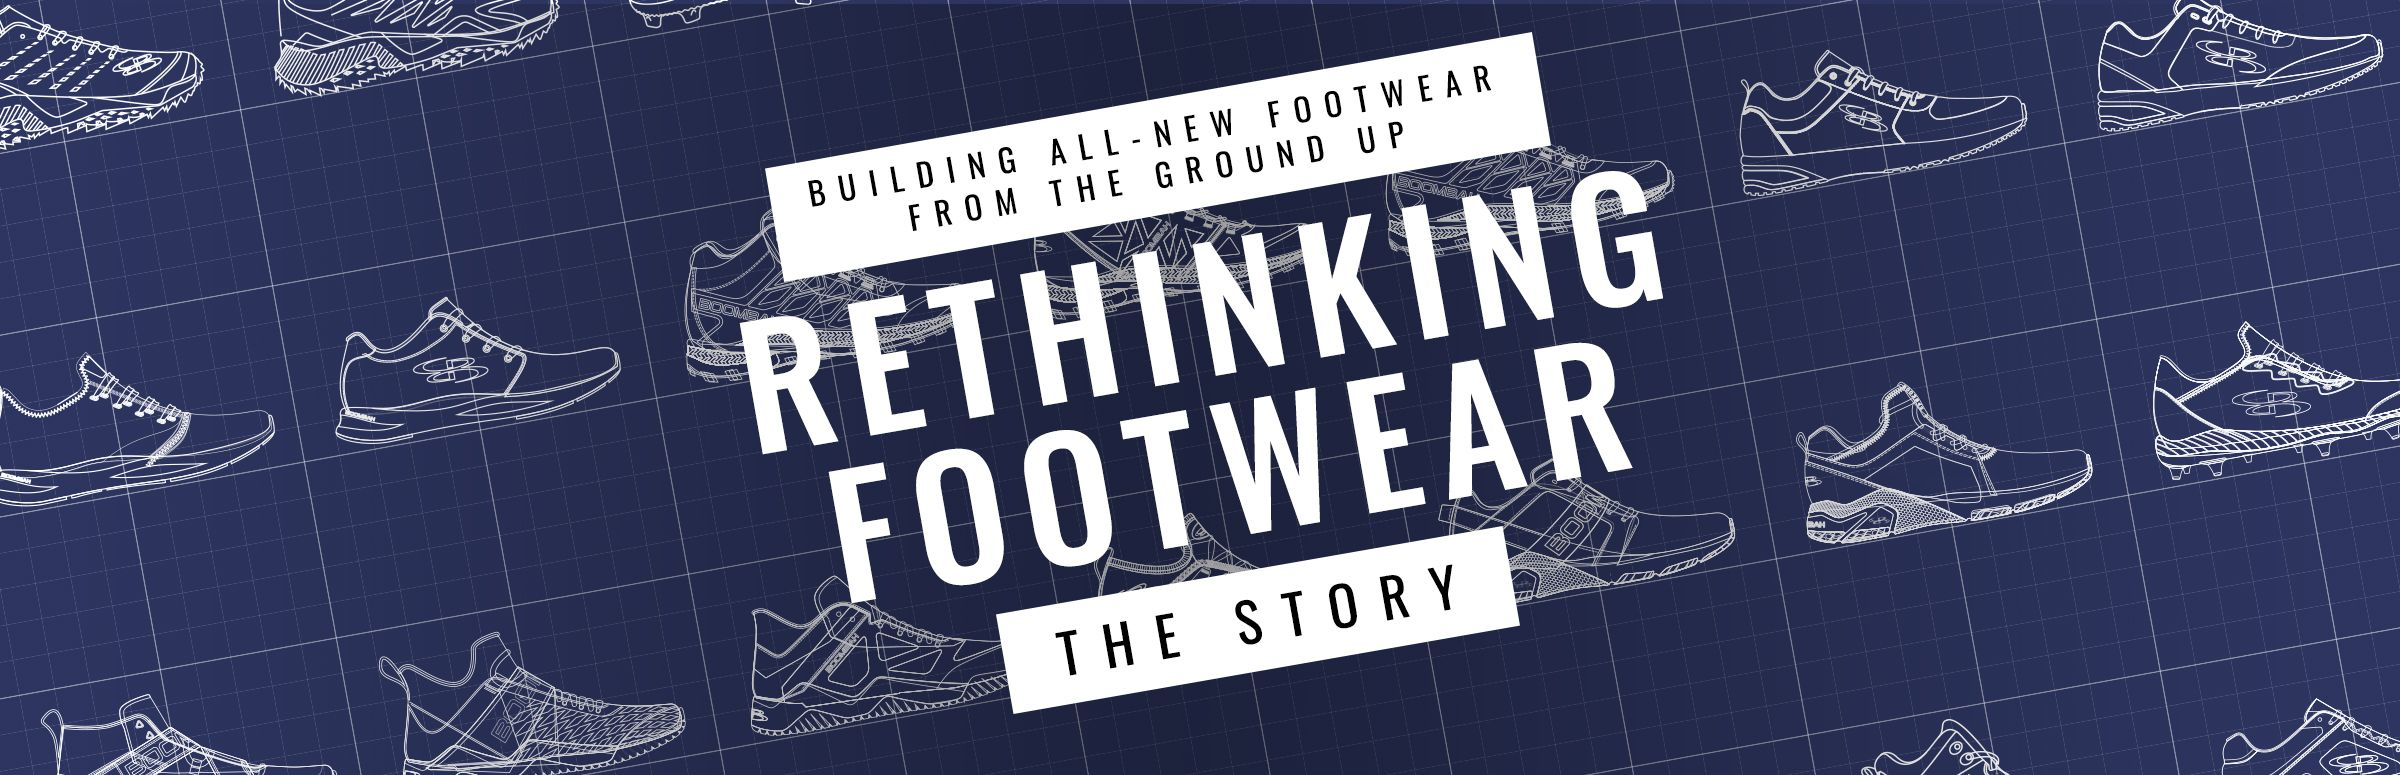 Building footwear from the ground up